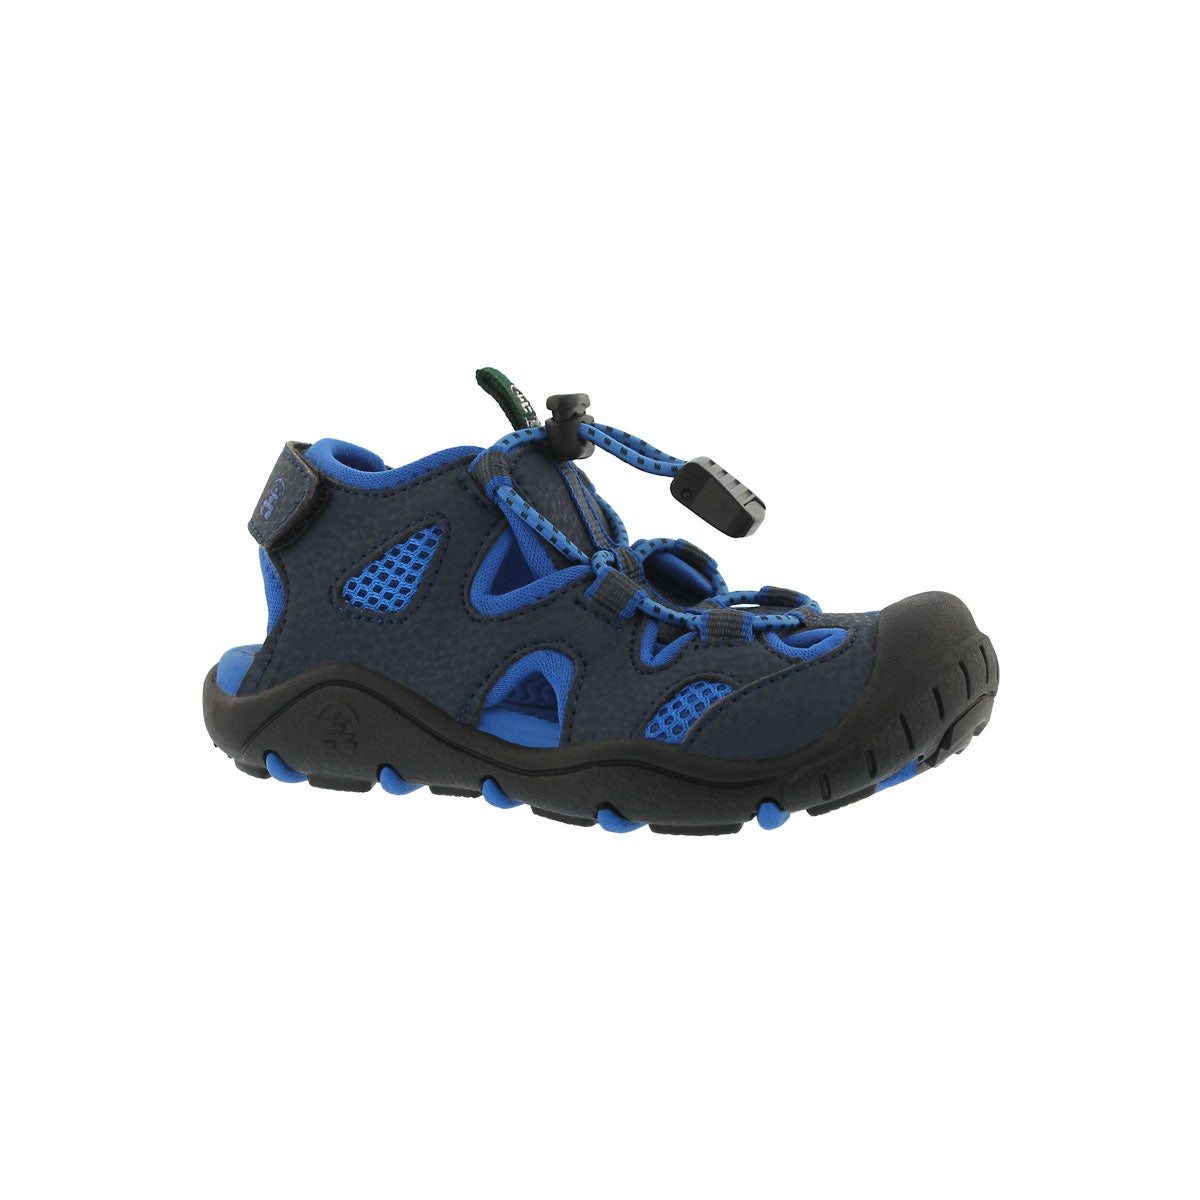 Infants' OYSTER 2 navy/strg blue fisherman sandals